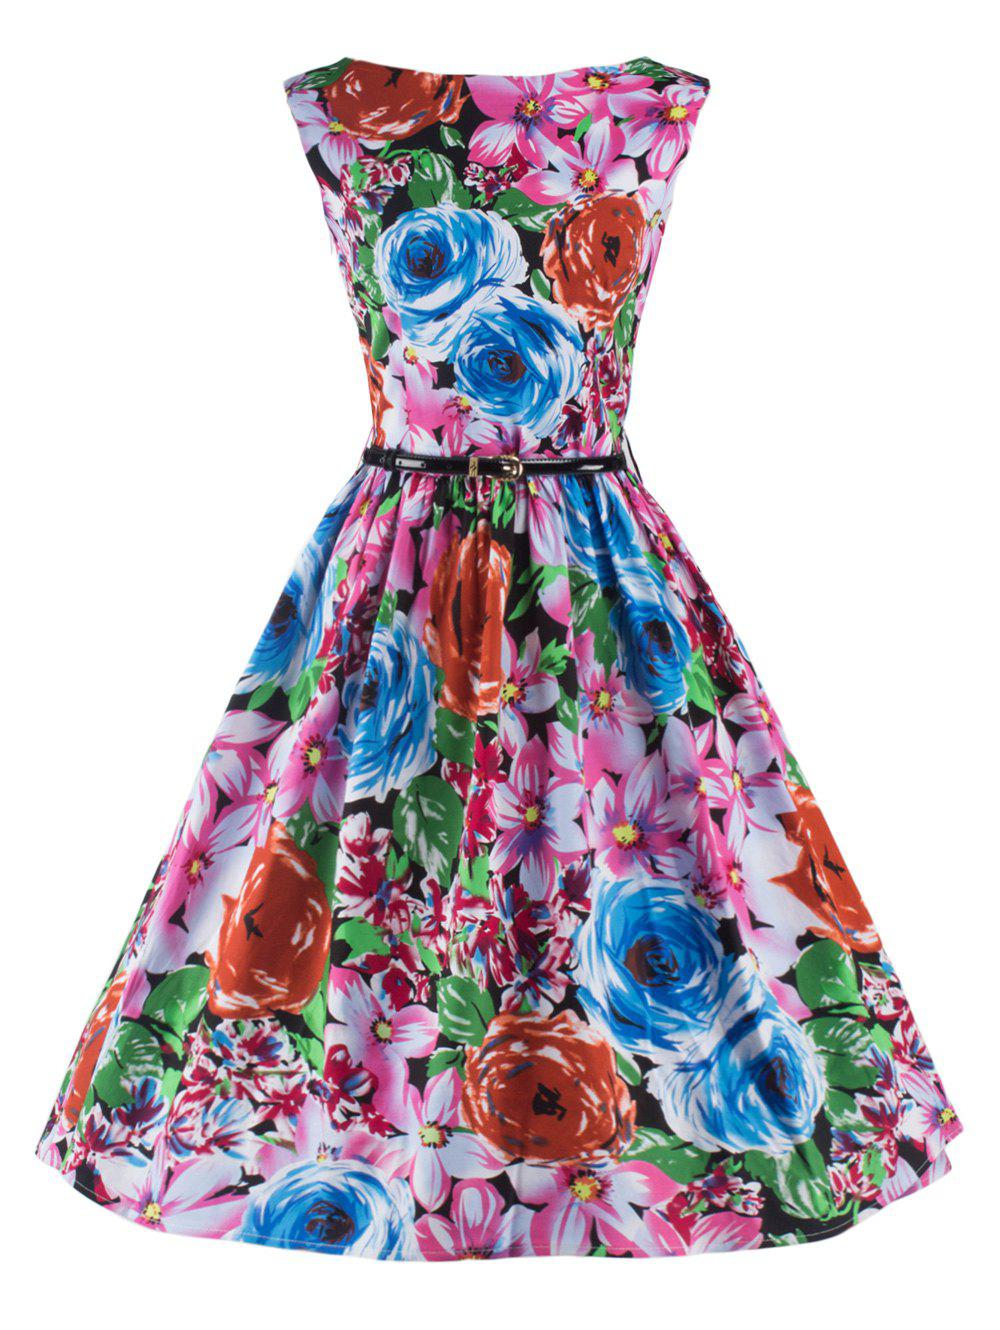 Elegant Sleeveless Floral Flare Dress For Women - COLORMIX 2XL